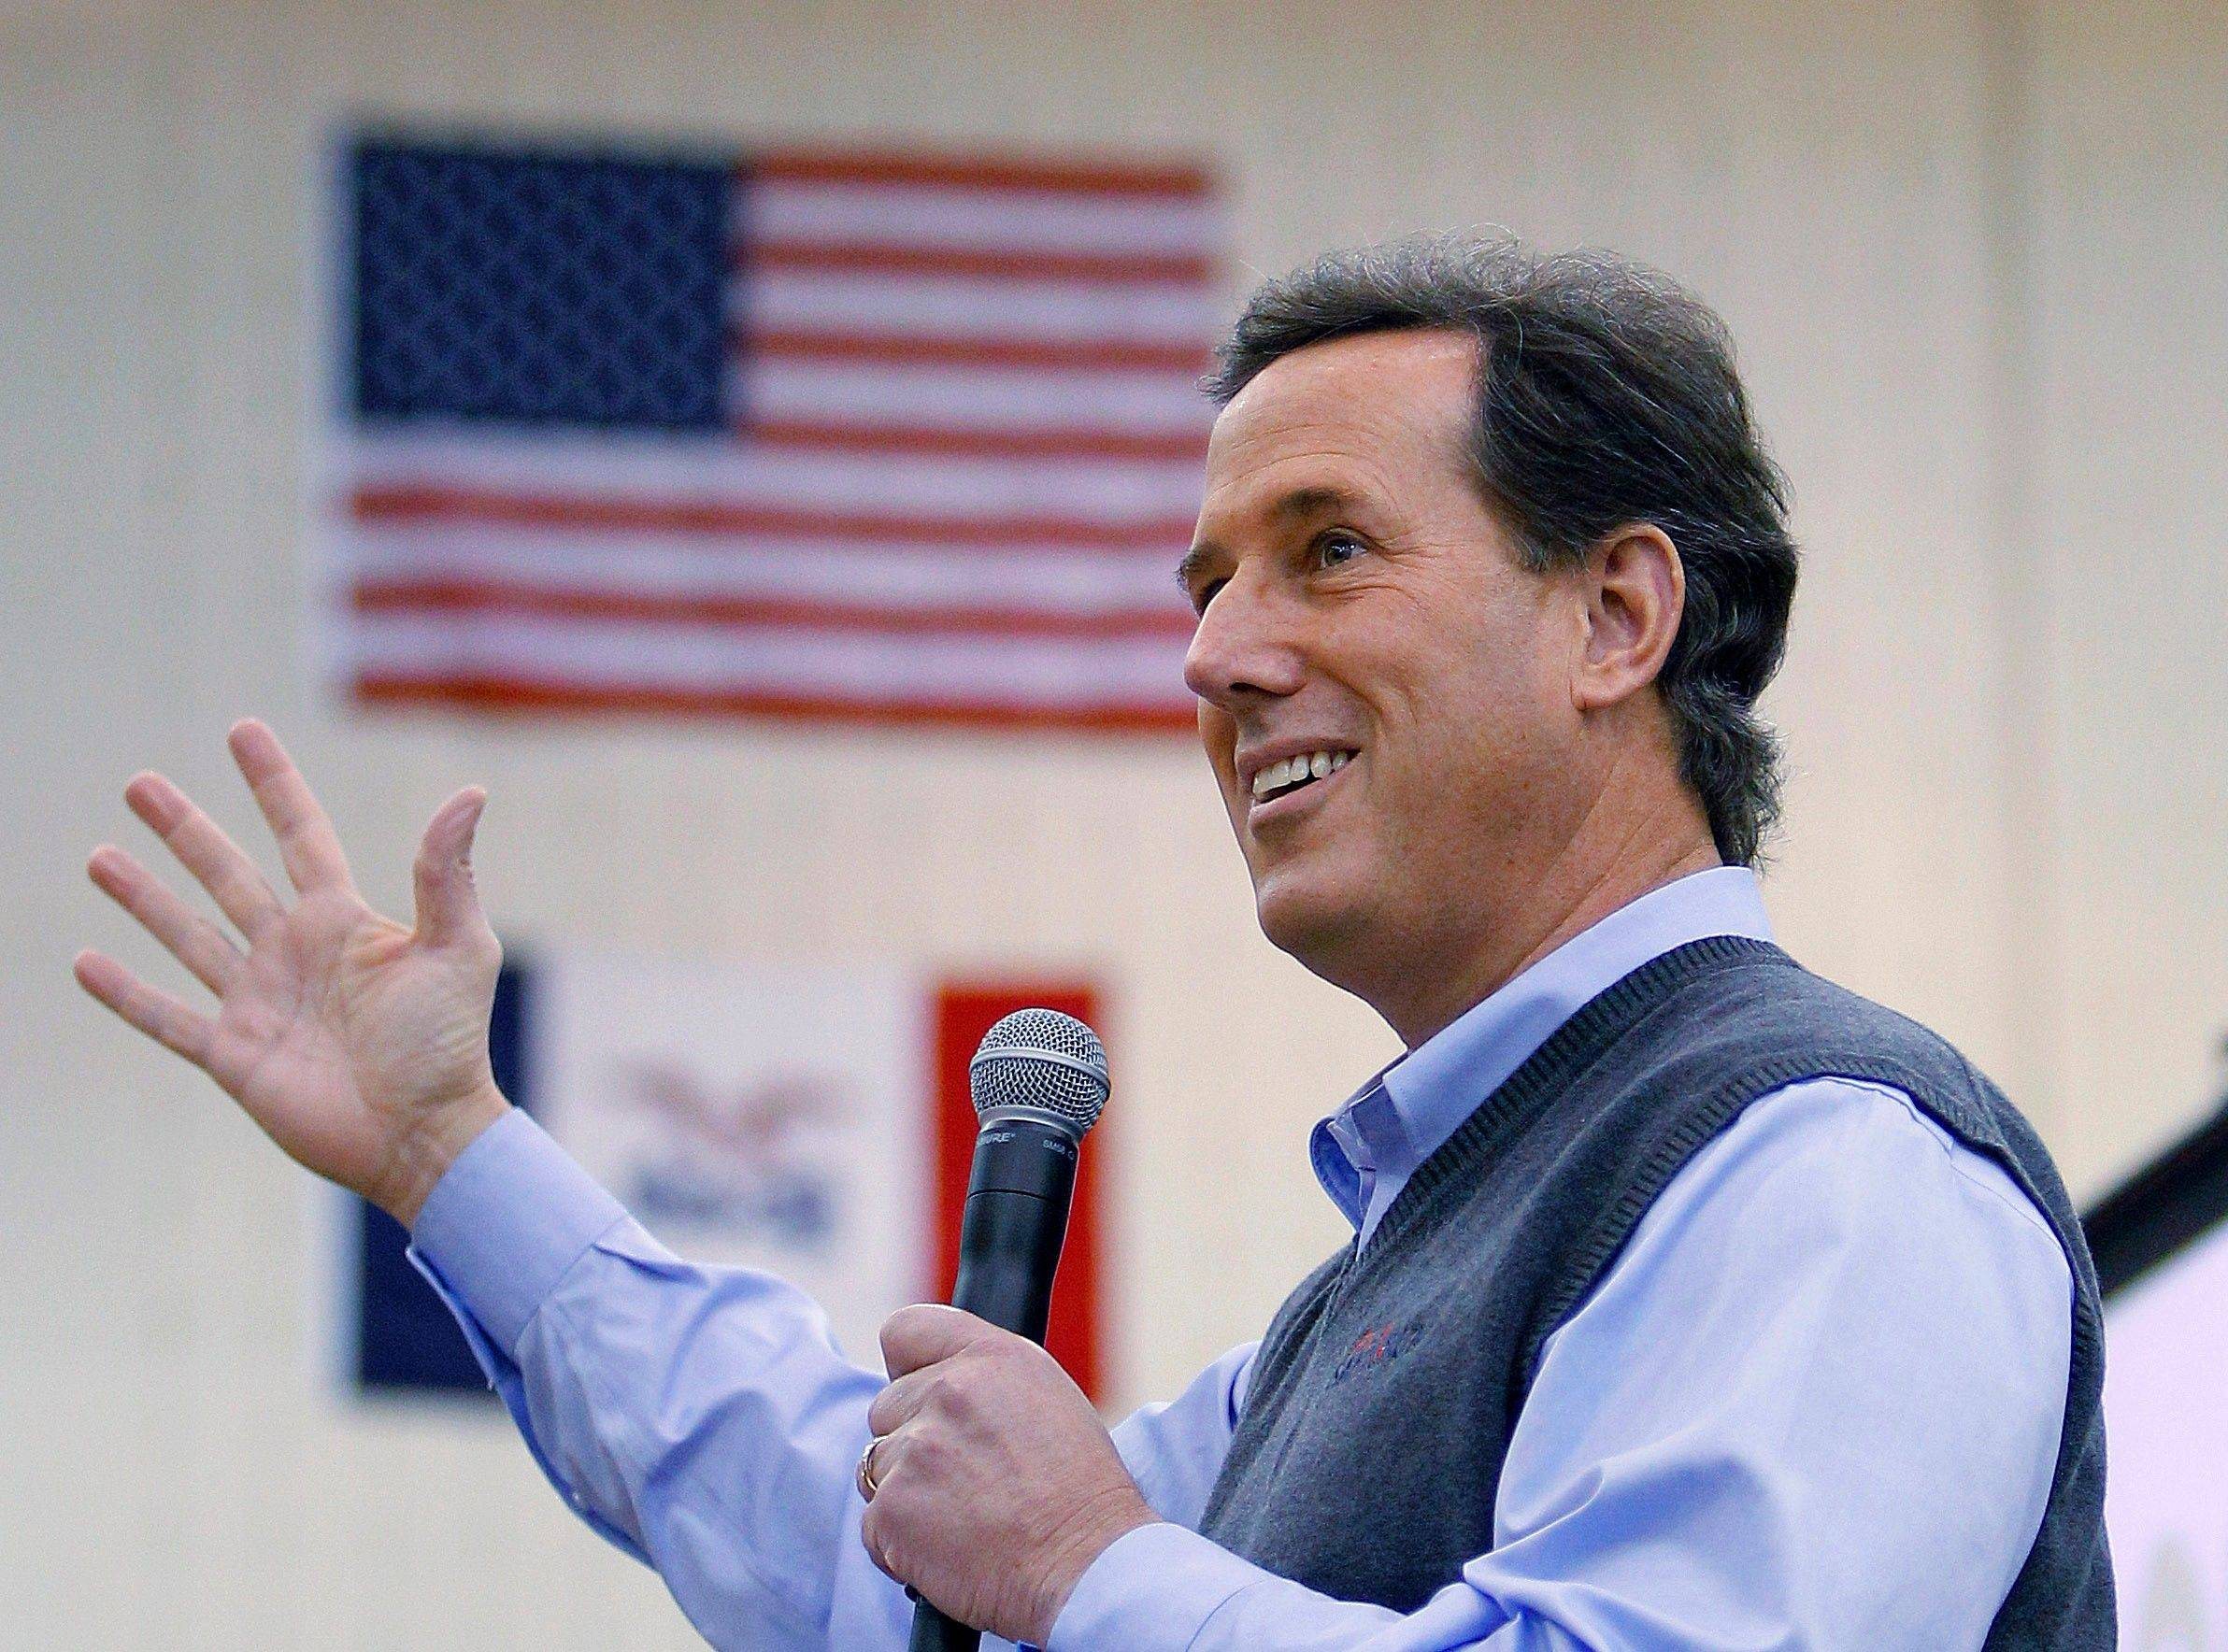 Republican presidential candidate Rick Santorum speaks during a forum in Iowa before that state's GOP caucuses. A fellow Carmel High graduate is helping to run his campaign in Illinois.